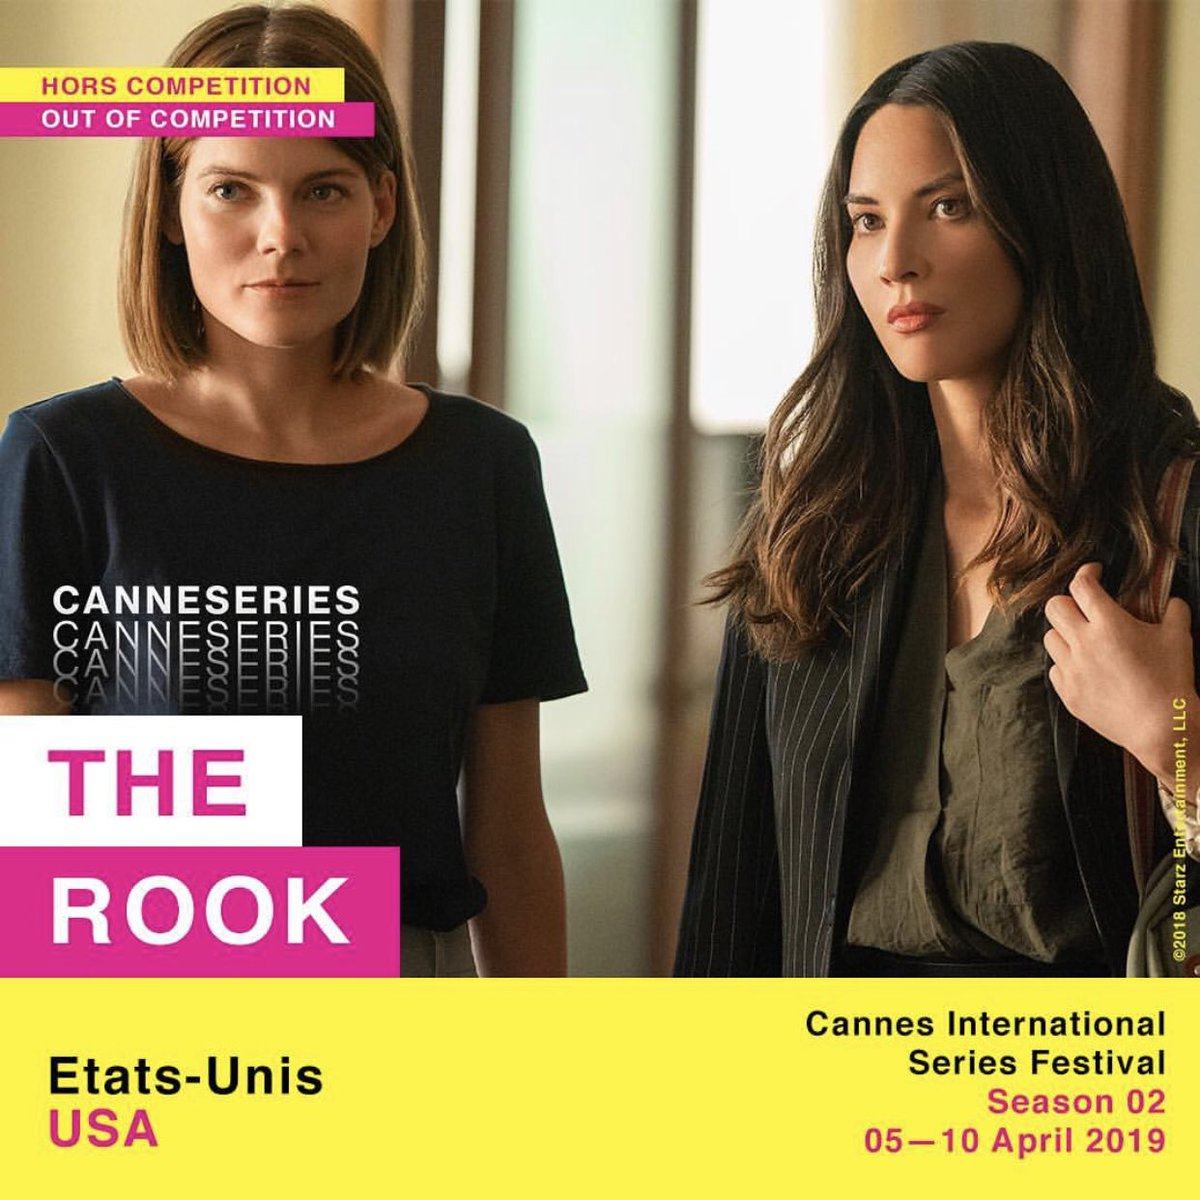 à bientôt! #TheRook #CANNESERIES @TheRookSTARZ @STARZ https://t.co/QtIwY6dIRv